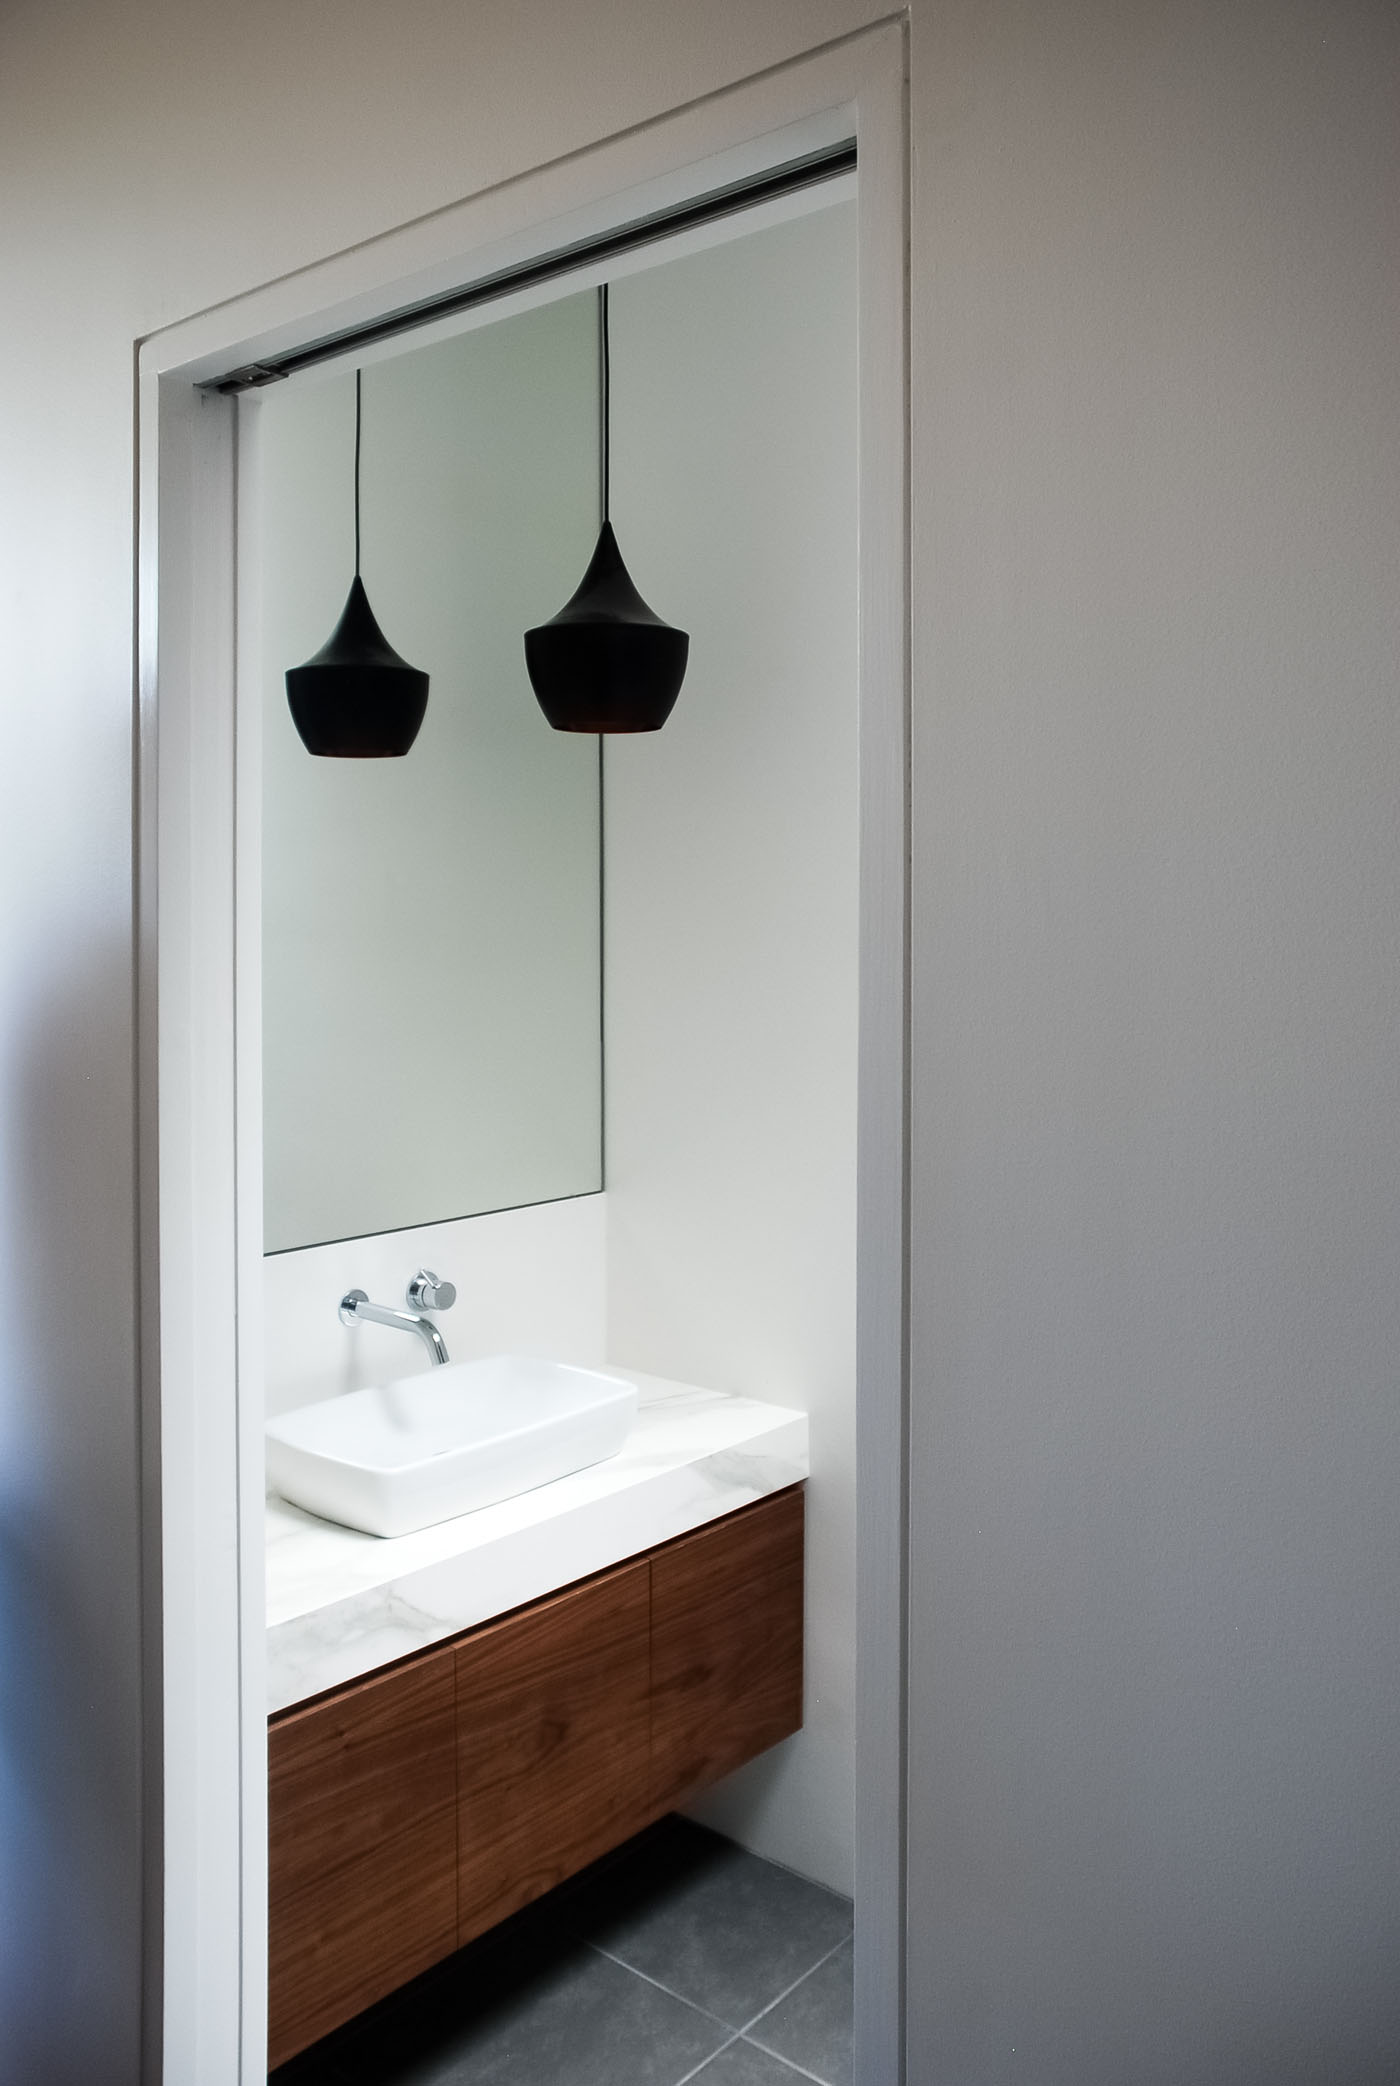 Roseville House by Sydney residential architects Sam Crawford Architects. Here shown a look into the modern bathroom.